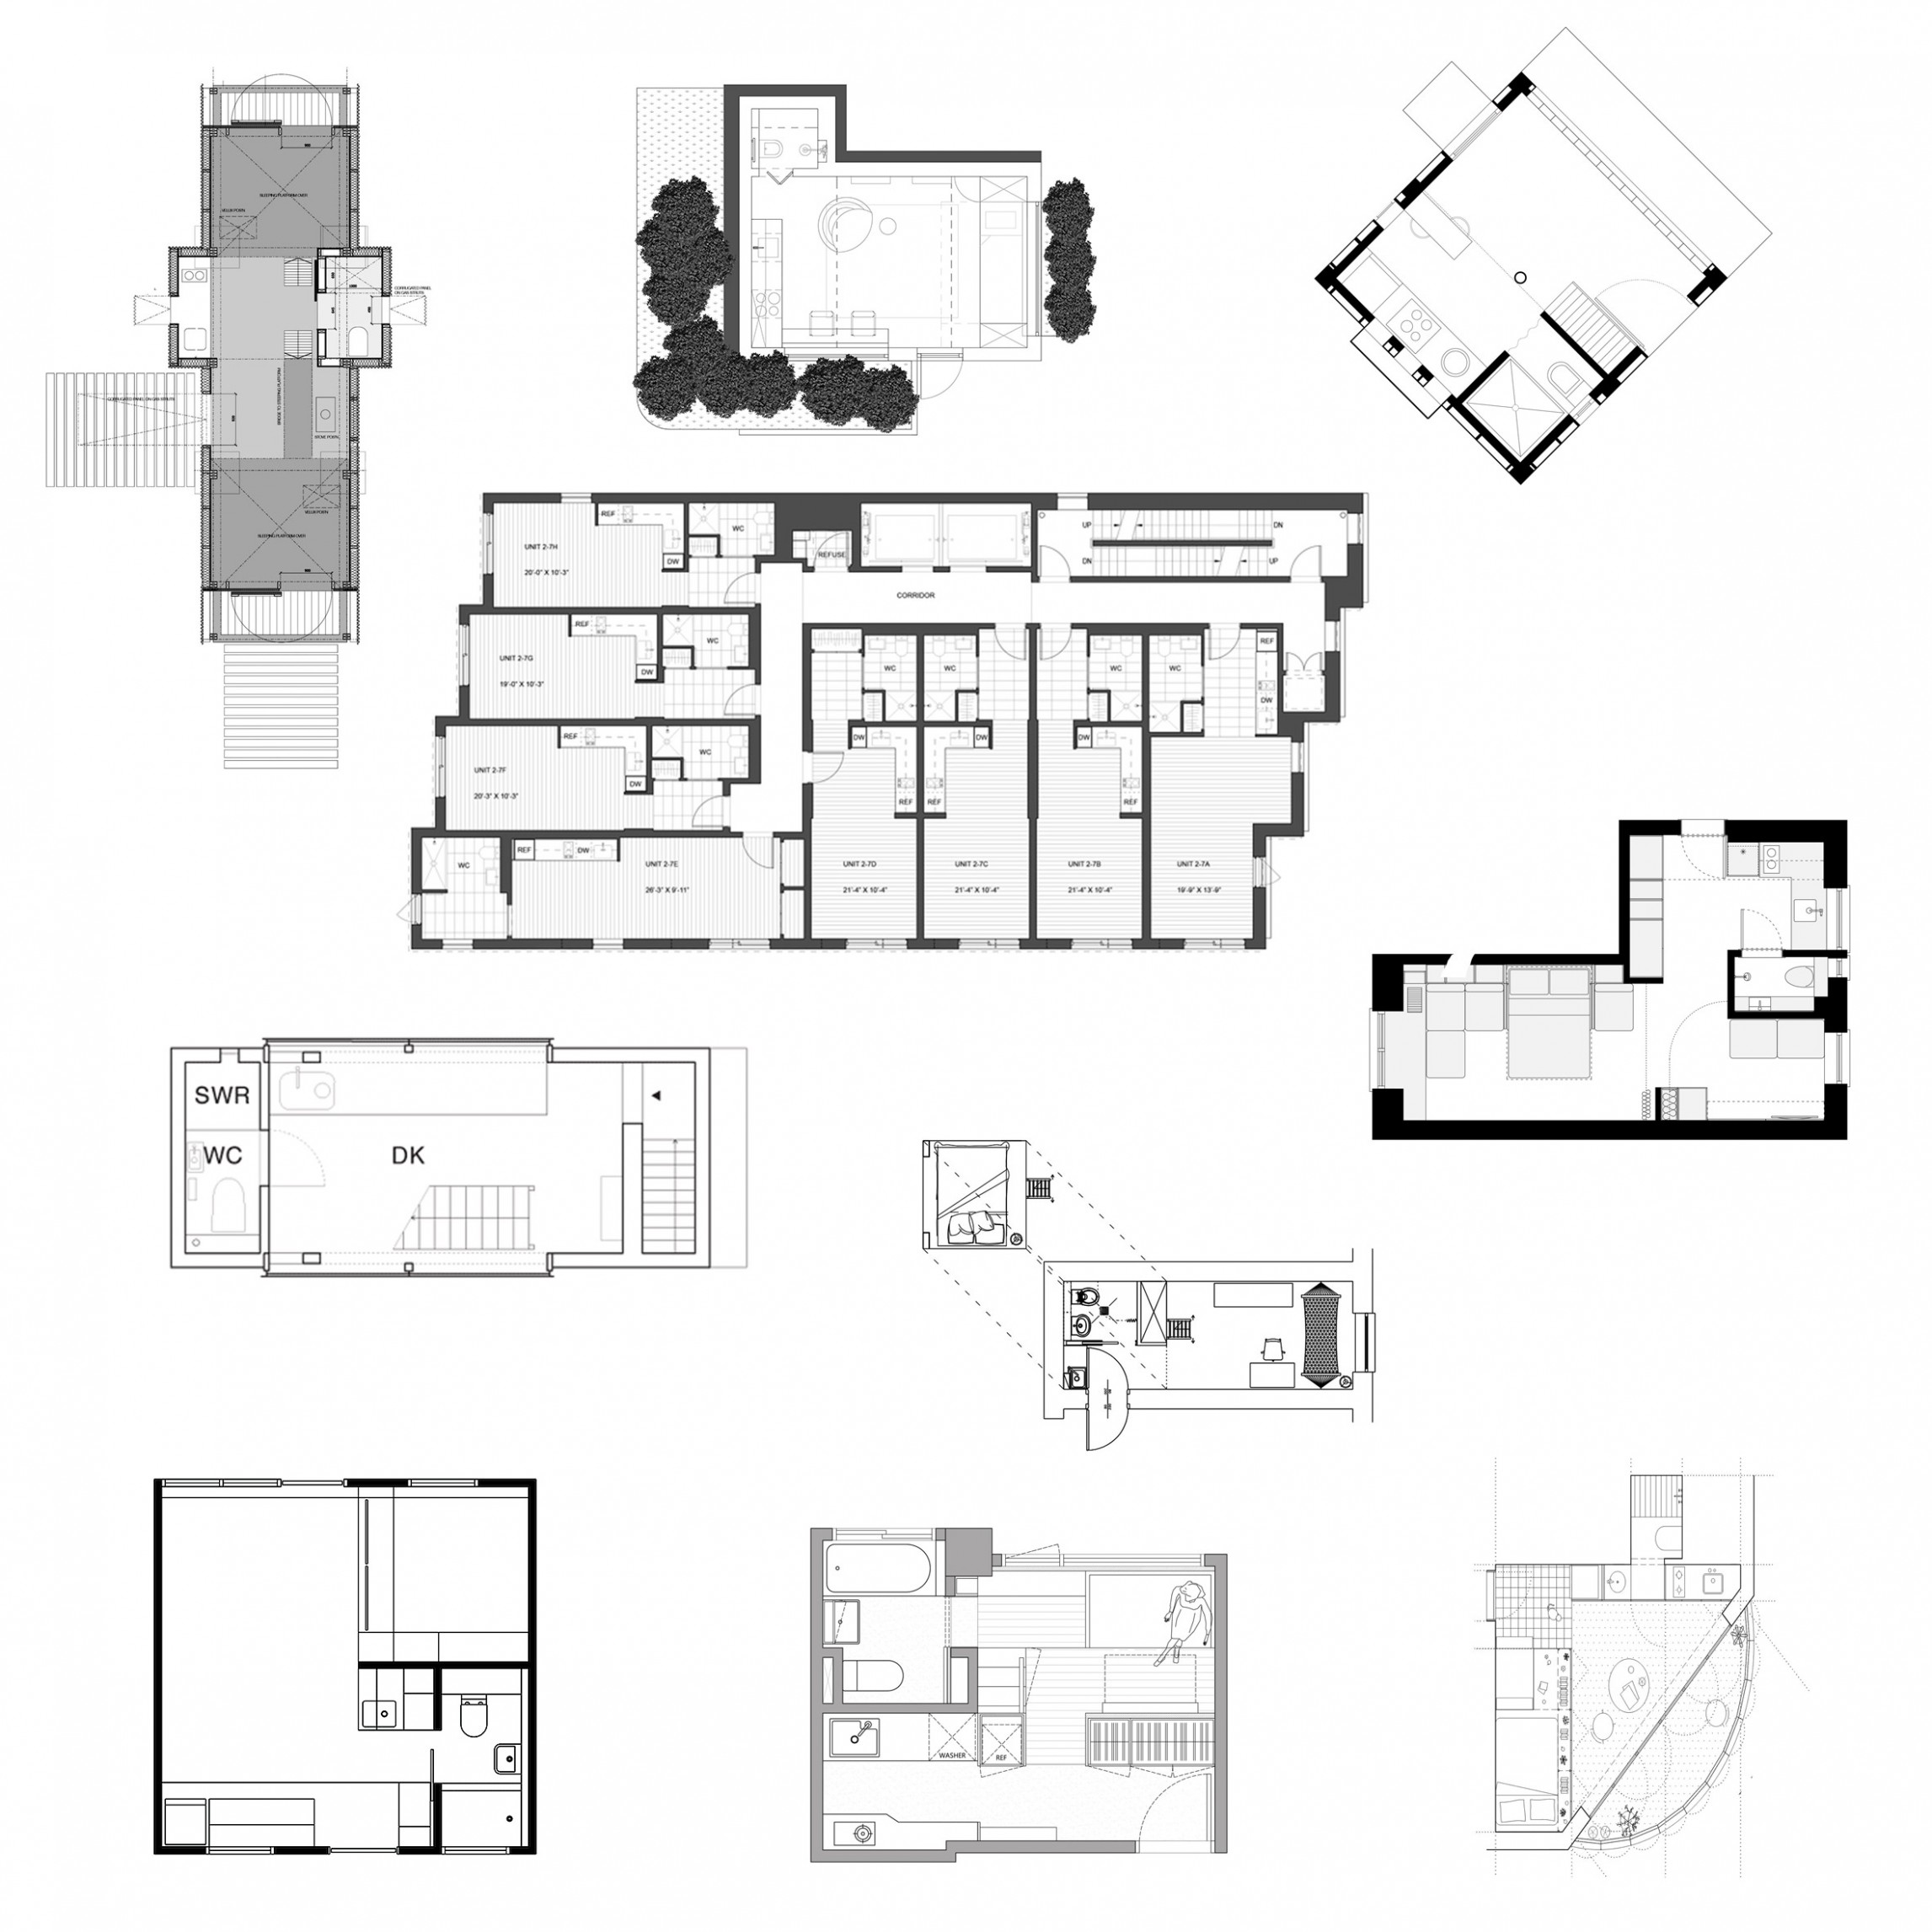 12 micro home floor plans designed to save space - Apartment Design Plans